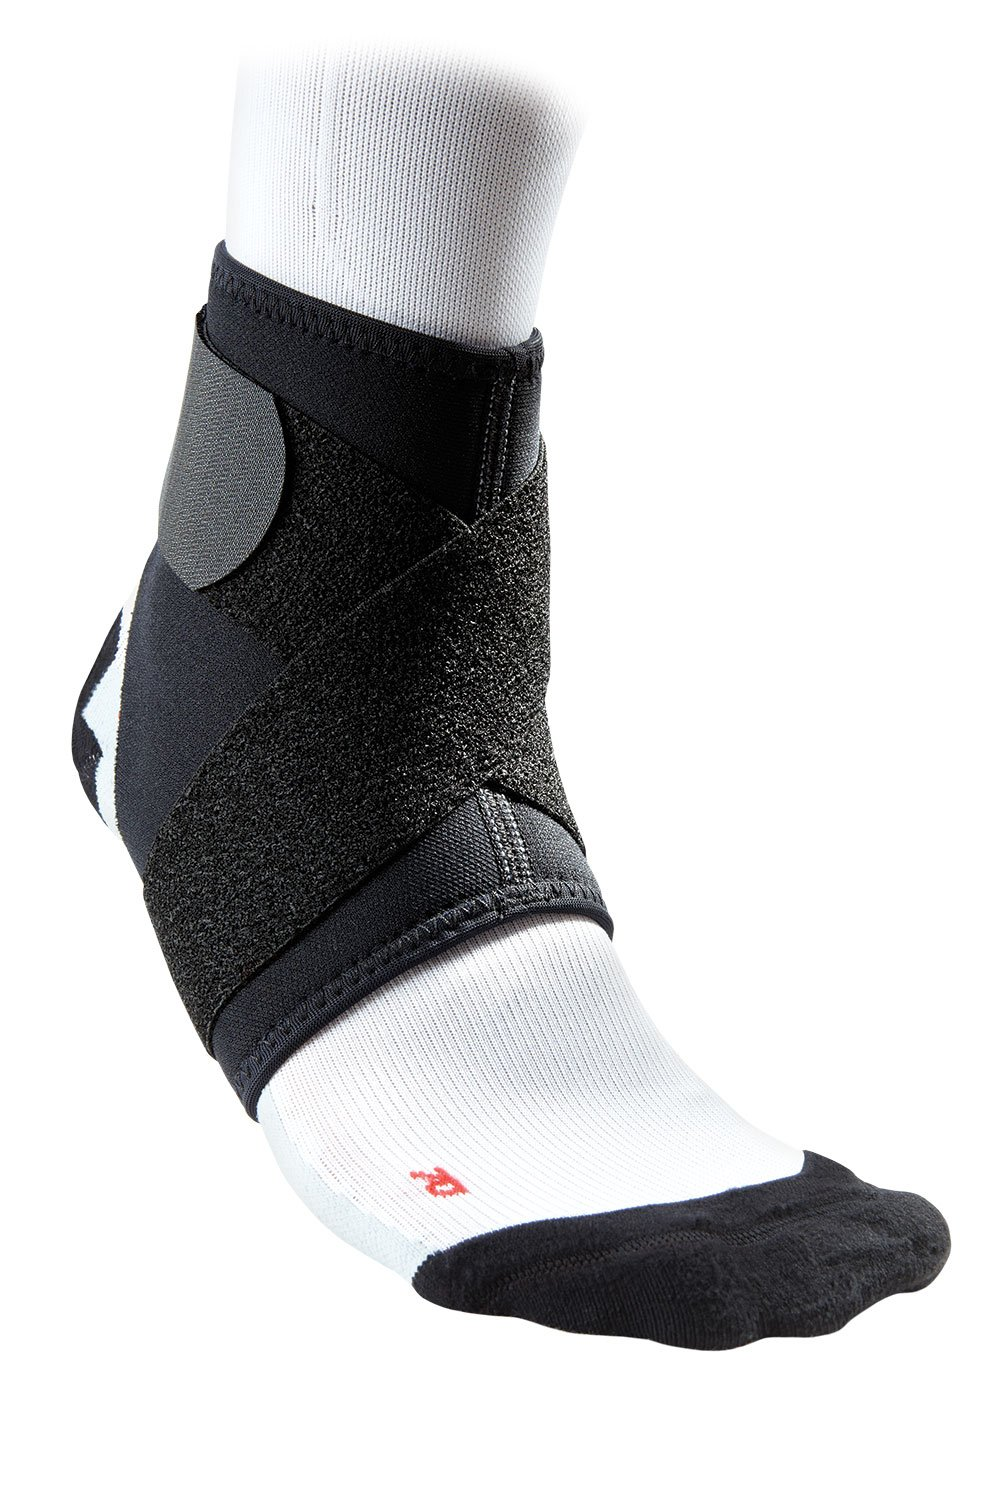 McDavid 432 Ankle Support With Strap (Black, Medium)